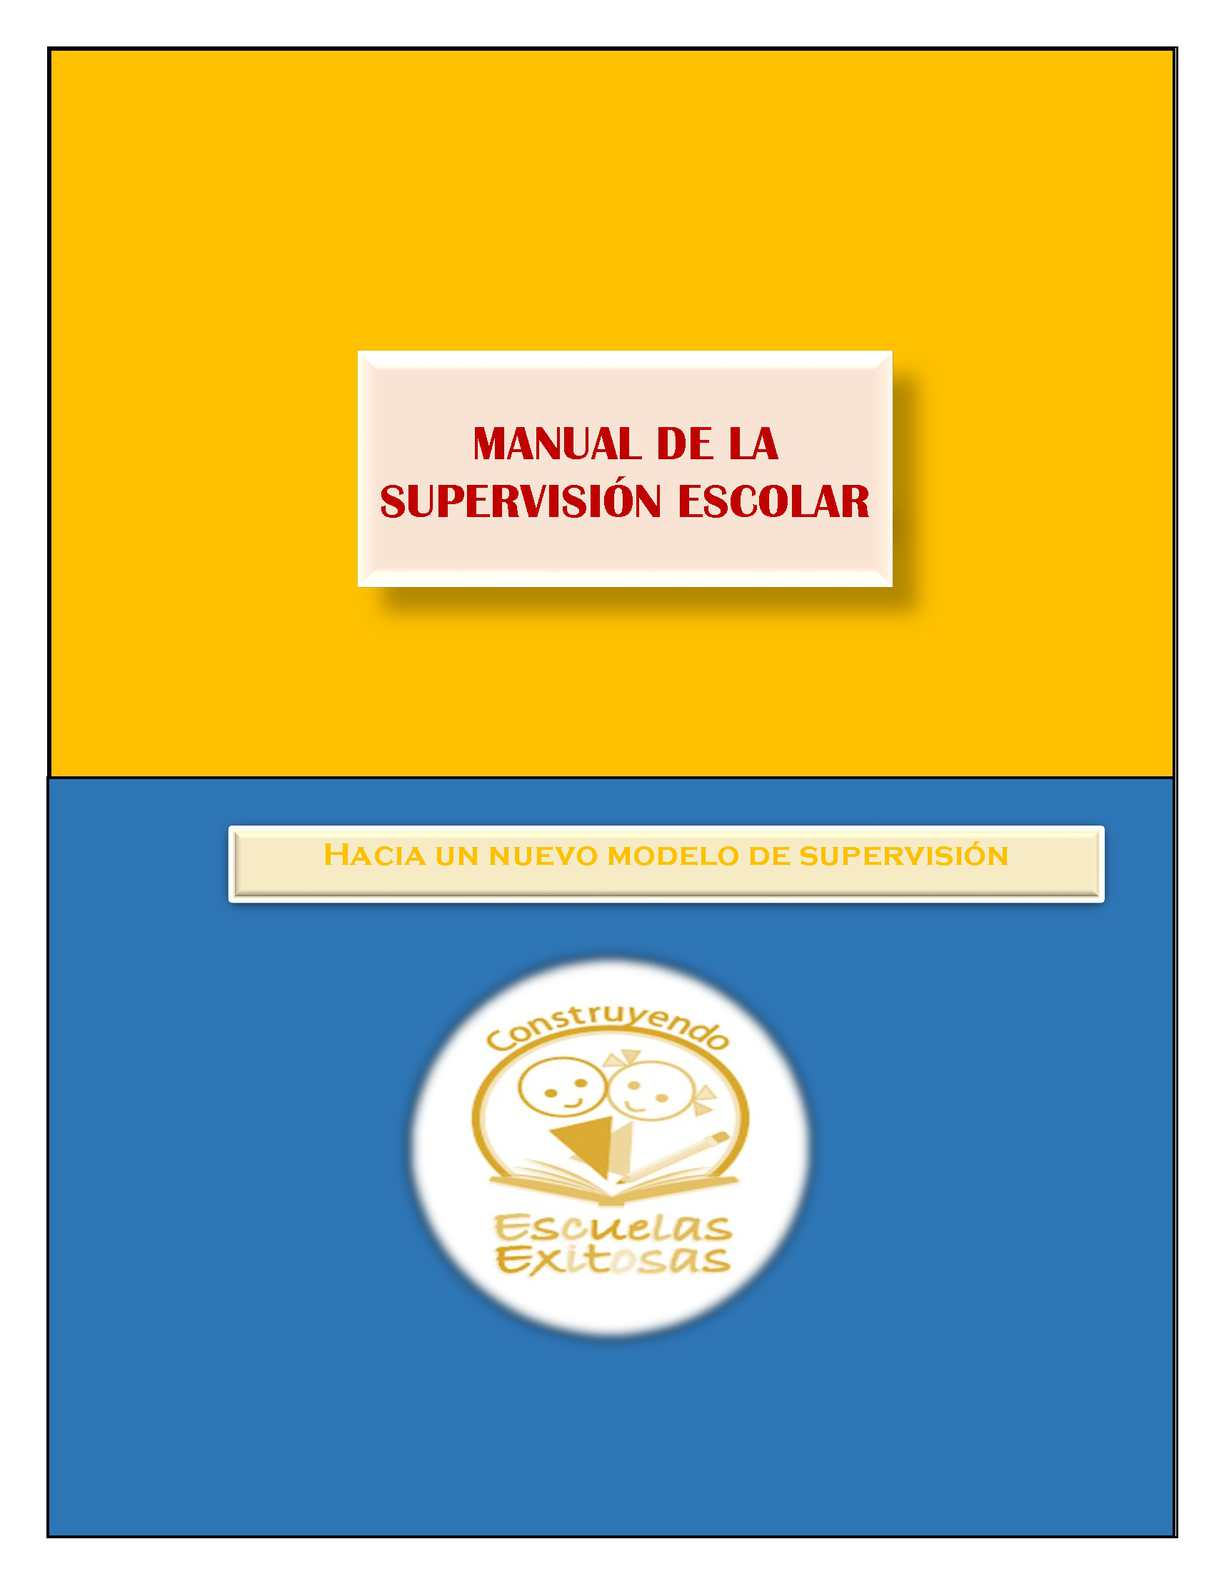 Calam o manual de la supervisi n escolar for Manual de acuicultura pdf